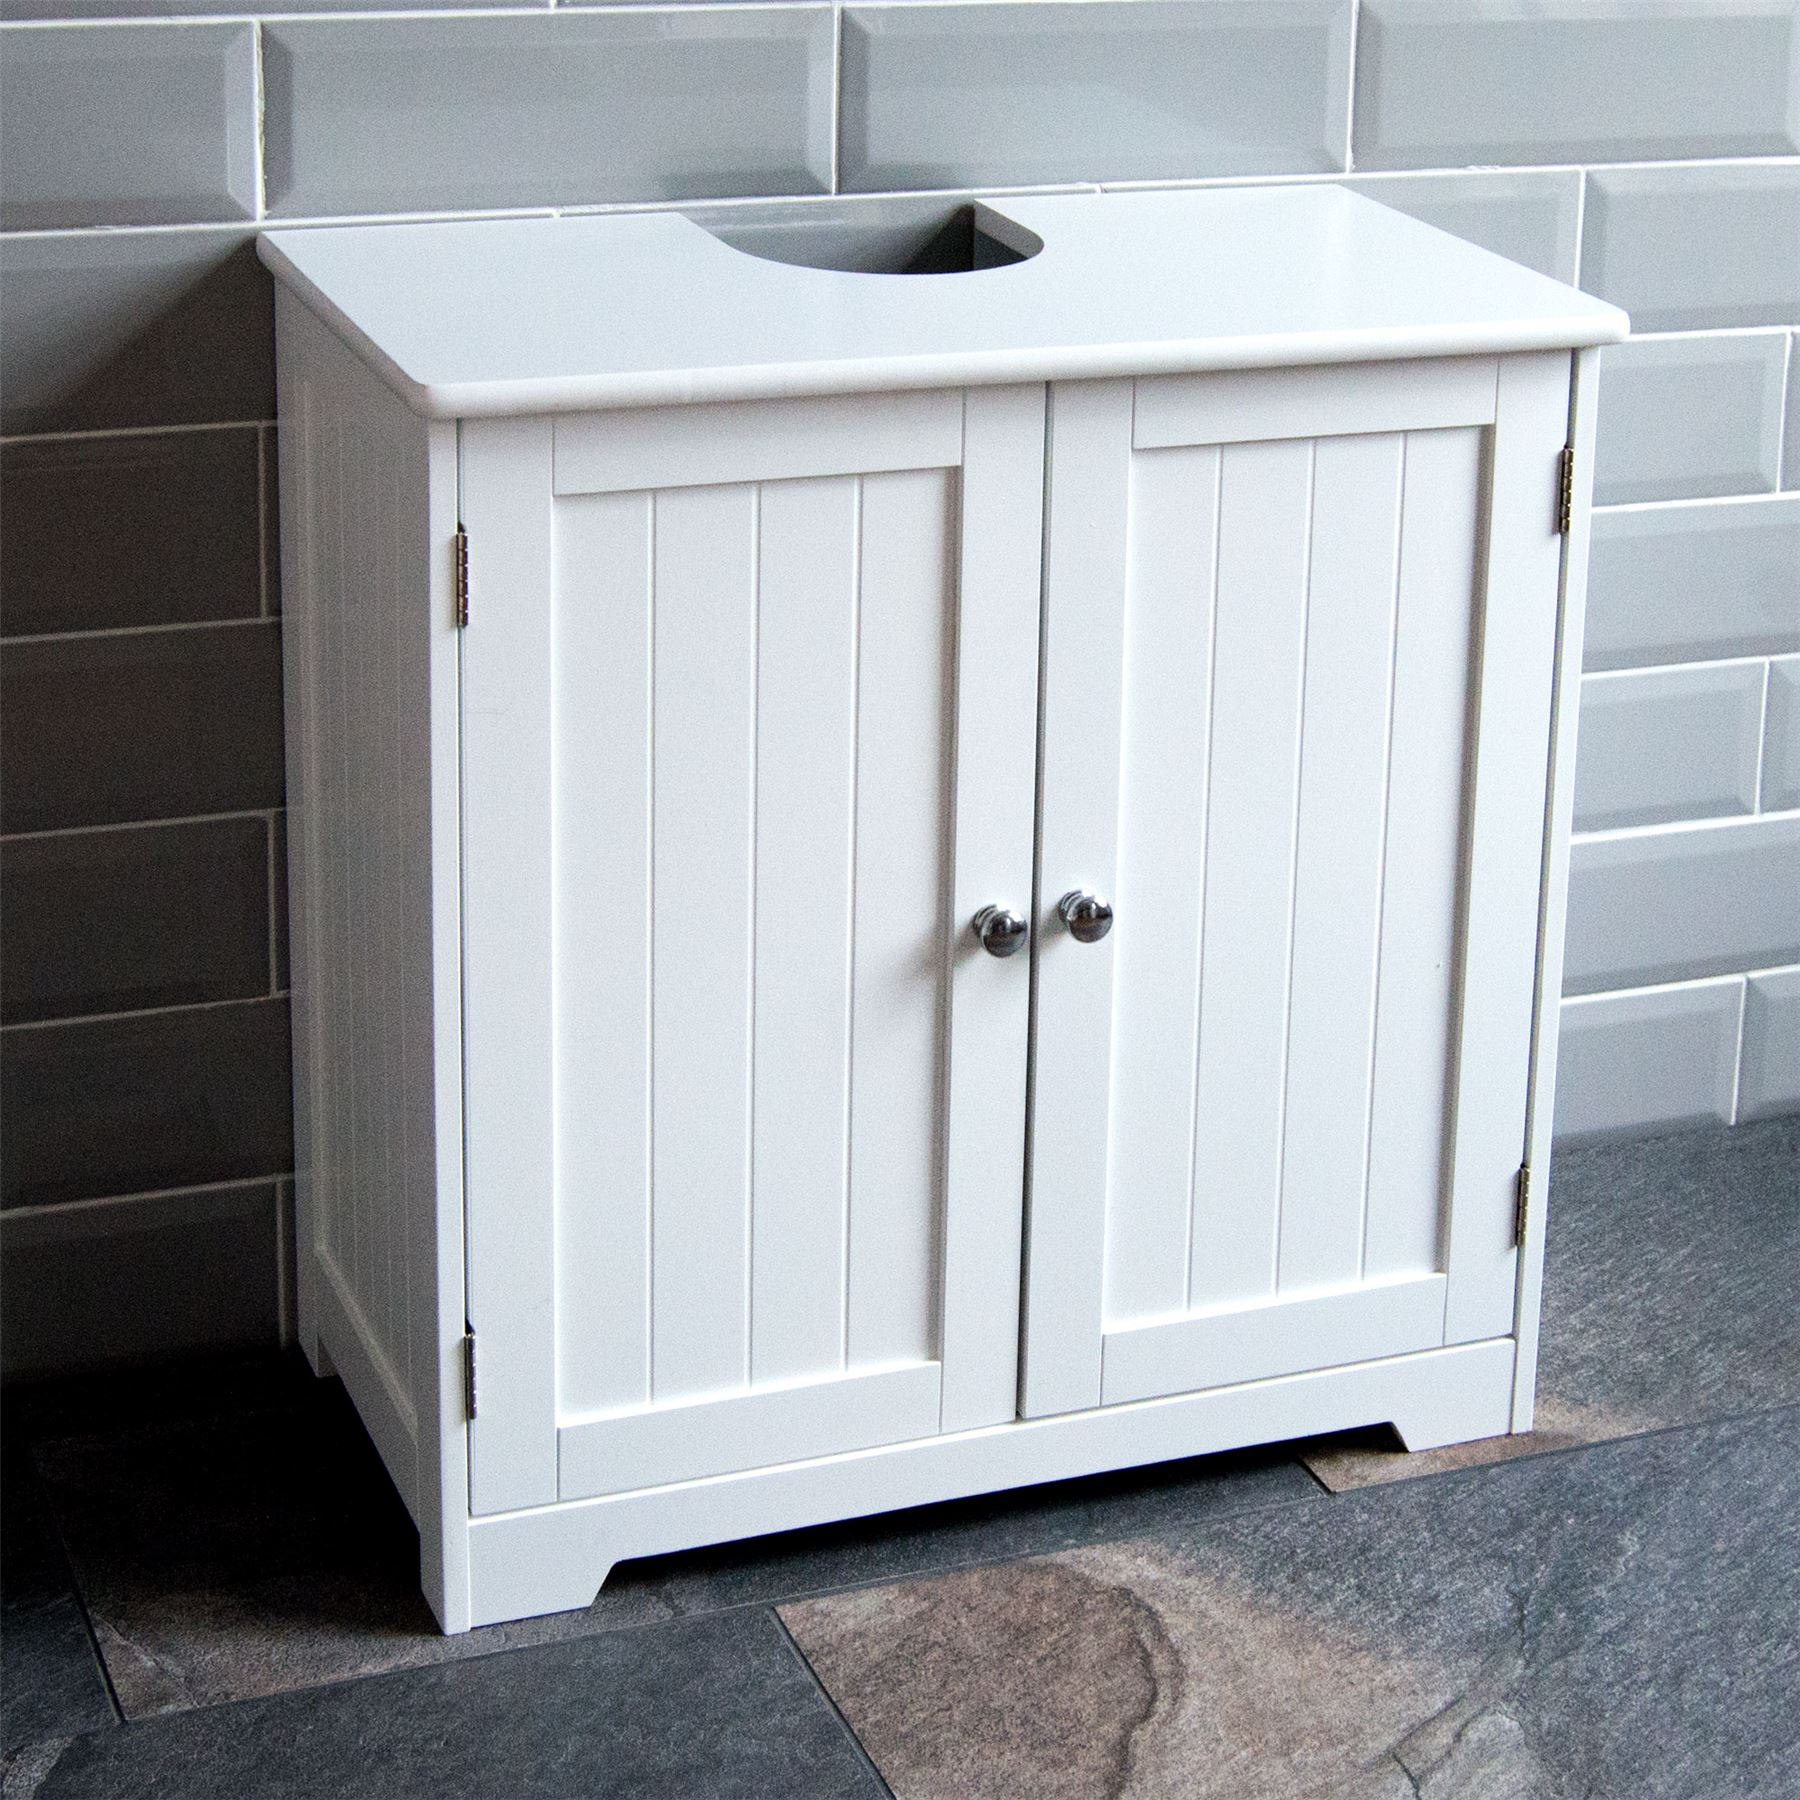 ... Picture 2 of 8 ... & Under Sink Basin Washbasin Cabinet Cupboard Unit Storage White ...